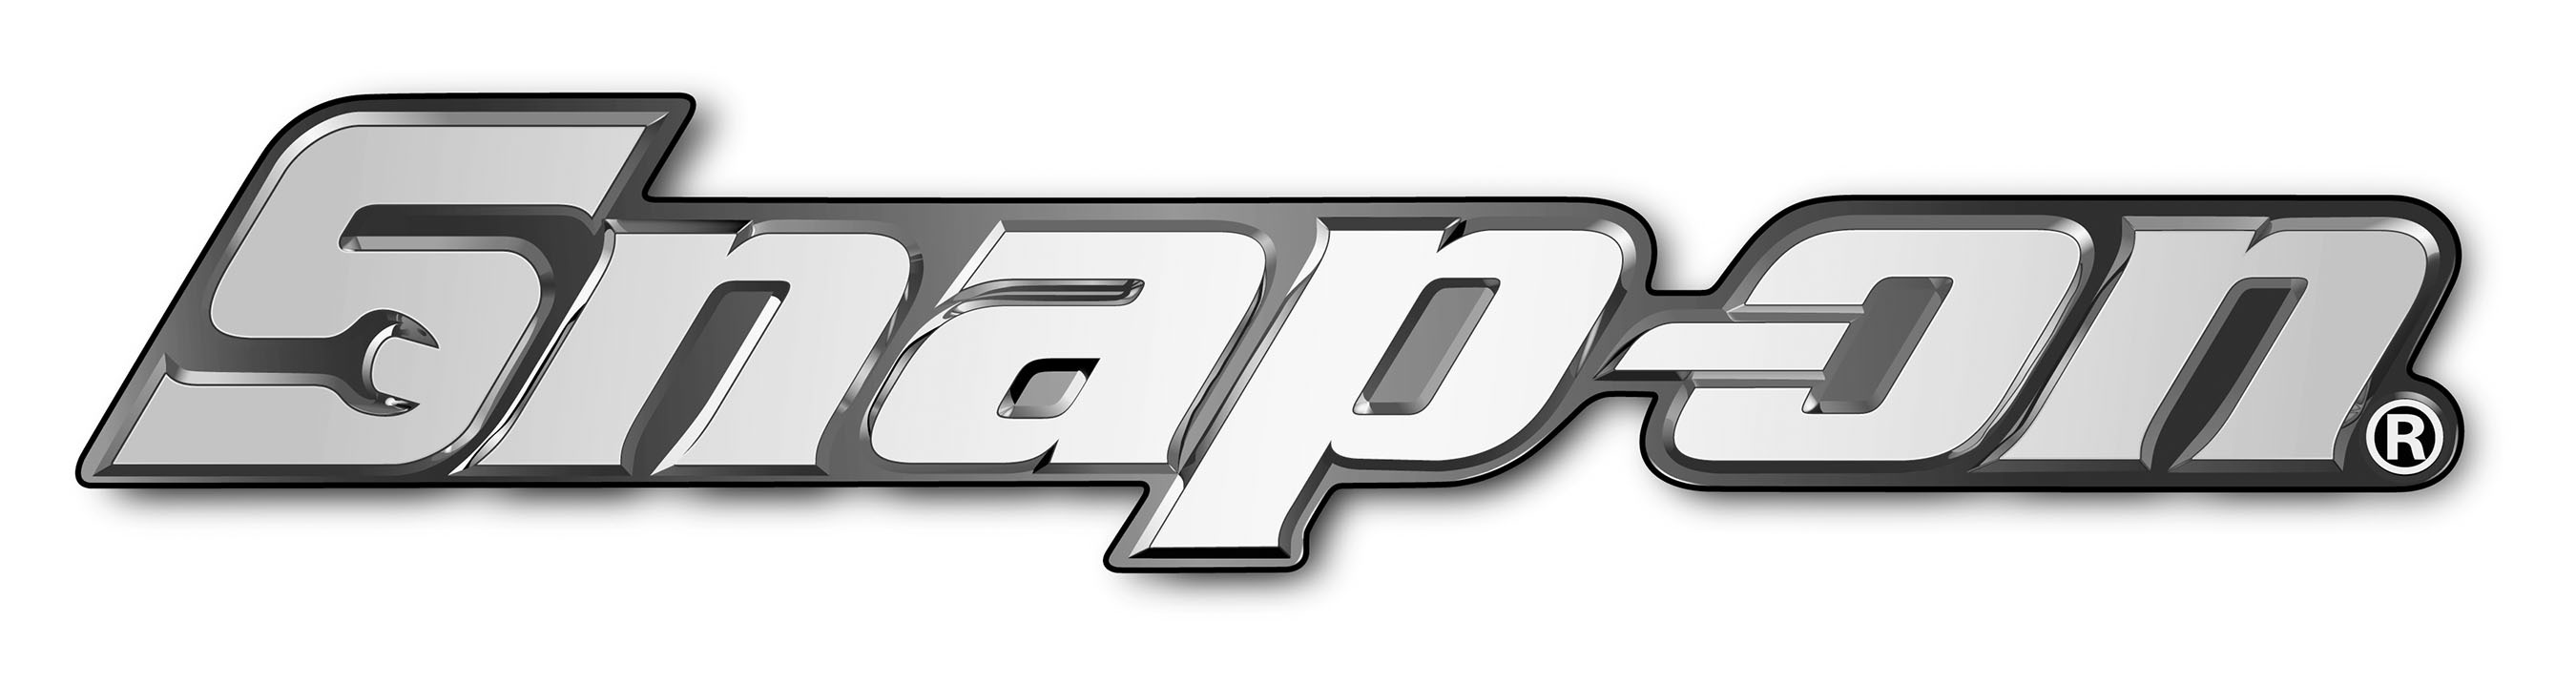 Snap On Tools Customer Service Number 877-762-7664